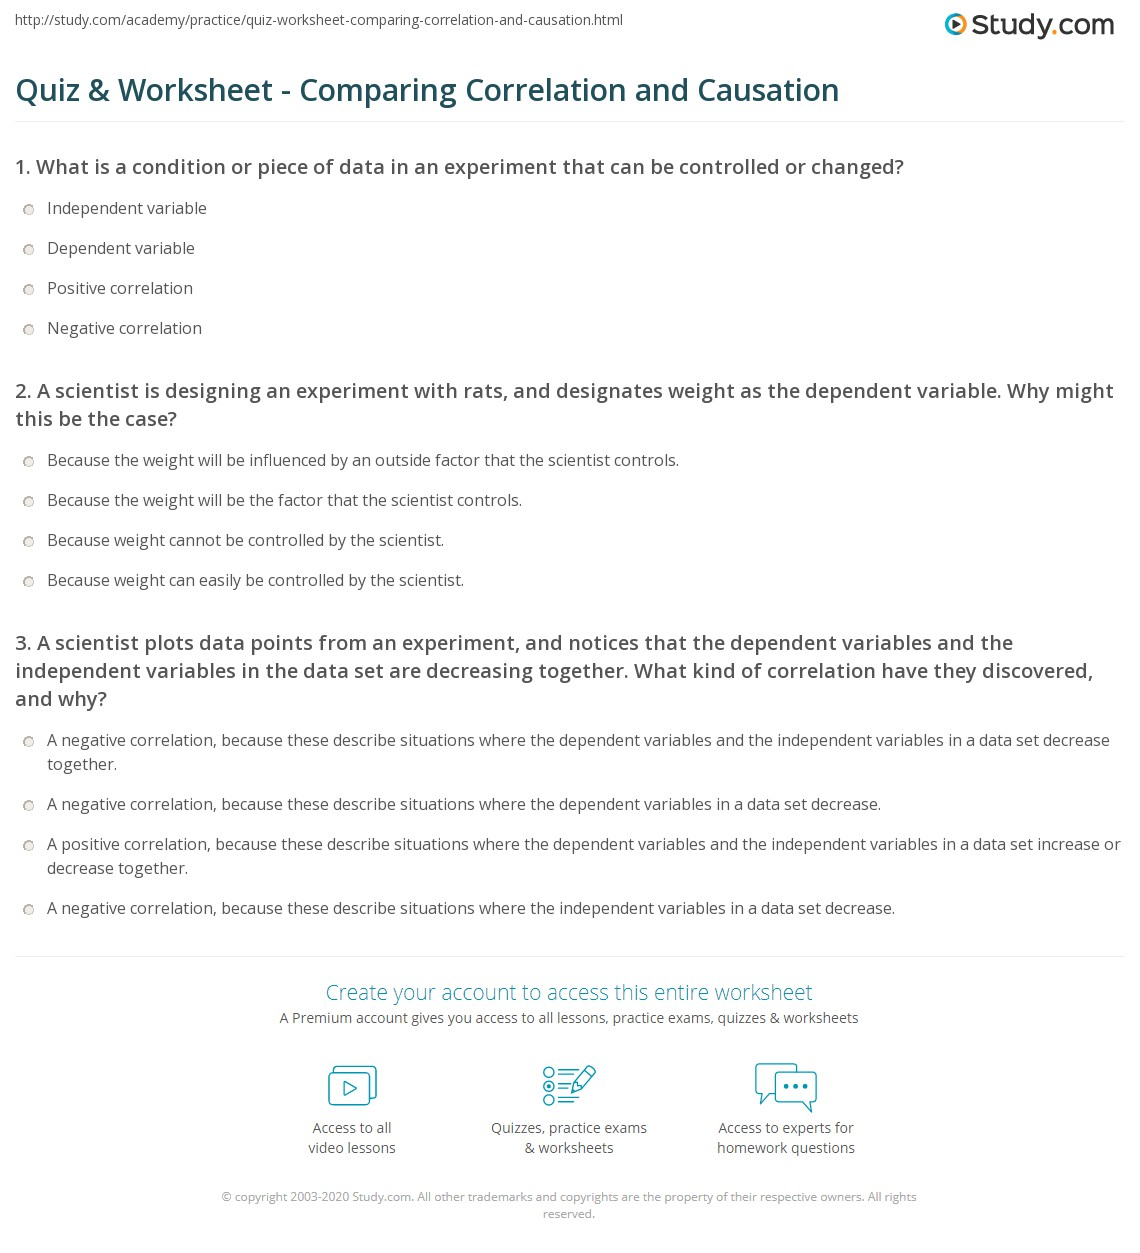 Aldiablosus  Picturesque Quiz Amp Worksheet  Comparing Correlation And Causation  Studycom With Glamorous Print Correlation Vs Causation Differences Amp Definition Worksheet With Beauteous Molecular Geometry Worksheet Also Solving Systems Of Equations Worksheet In Addition Th Step Worksheet And Kindergarten Worksheet As Well As Systems Of Equations Word Problems Worksheet Additionally Free Grammar Worksheets From Studycom With Aldiablosus  Glamorous Quiz Amp Worksheet  Comparing Correlation And Causation  Studycom With Beauteous Print Correlation Vs Causation Differences Amp Definition Worksheet And Picturesque Molecular Geometry Worksheet Also Solving Systems Of Equations Worksheet In Addition Th Step Worksheet From Studycom